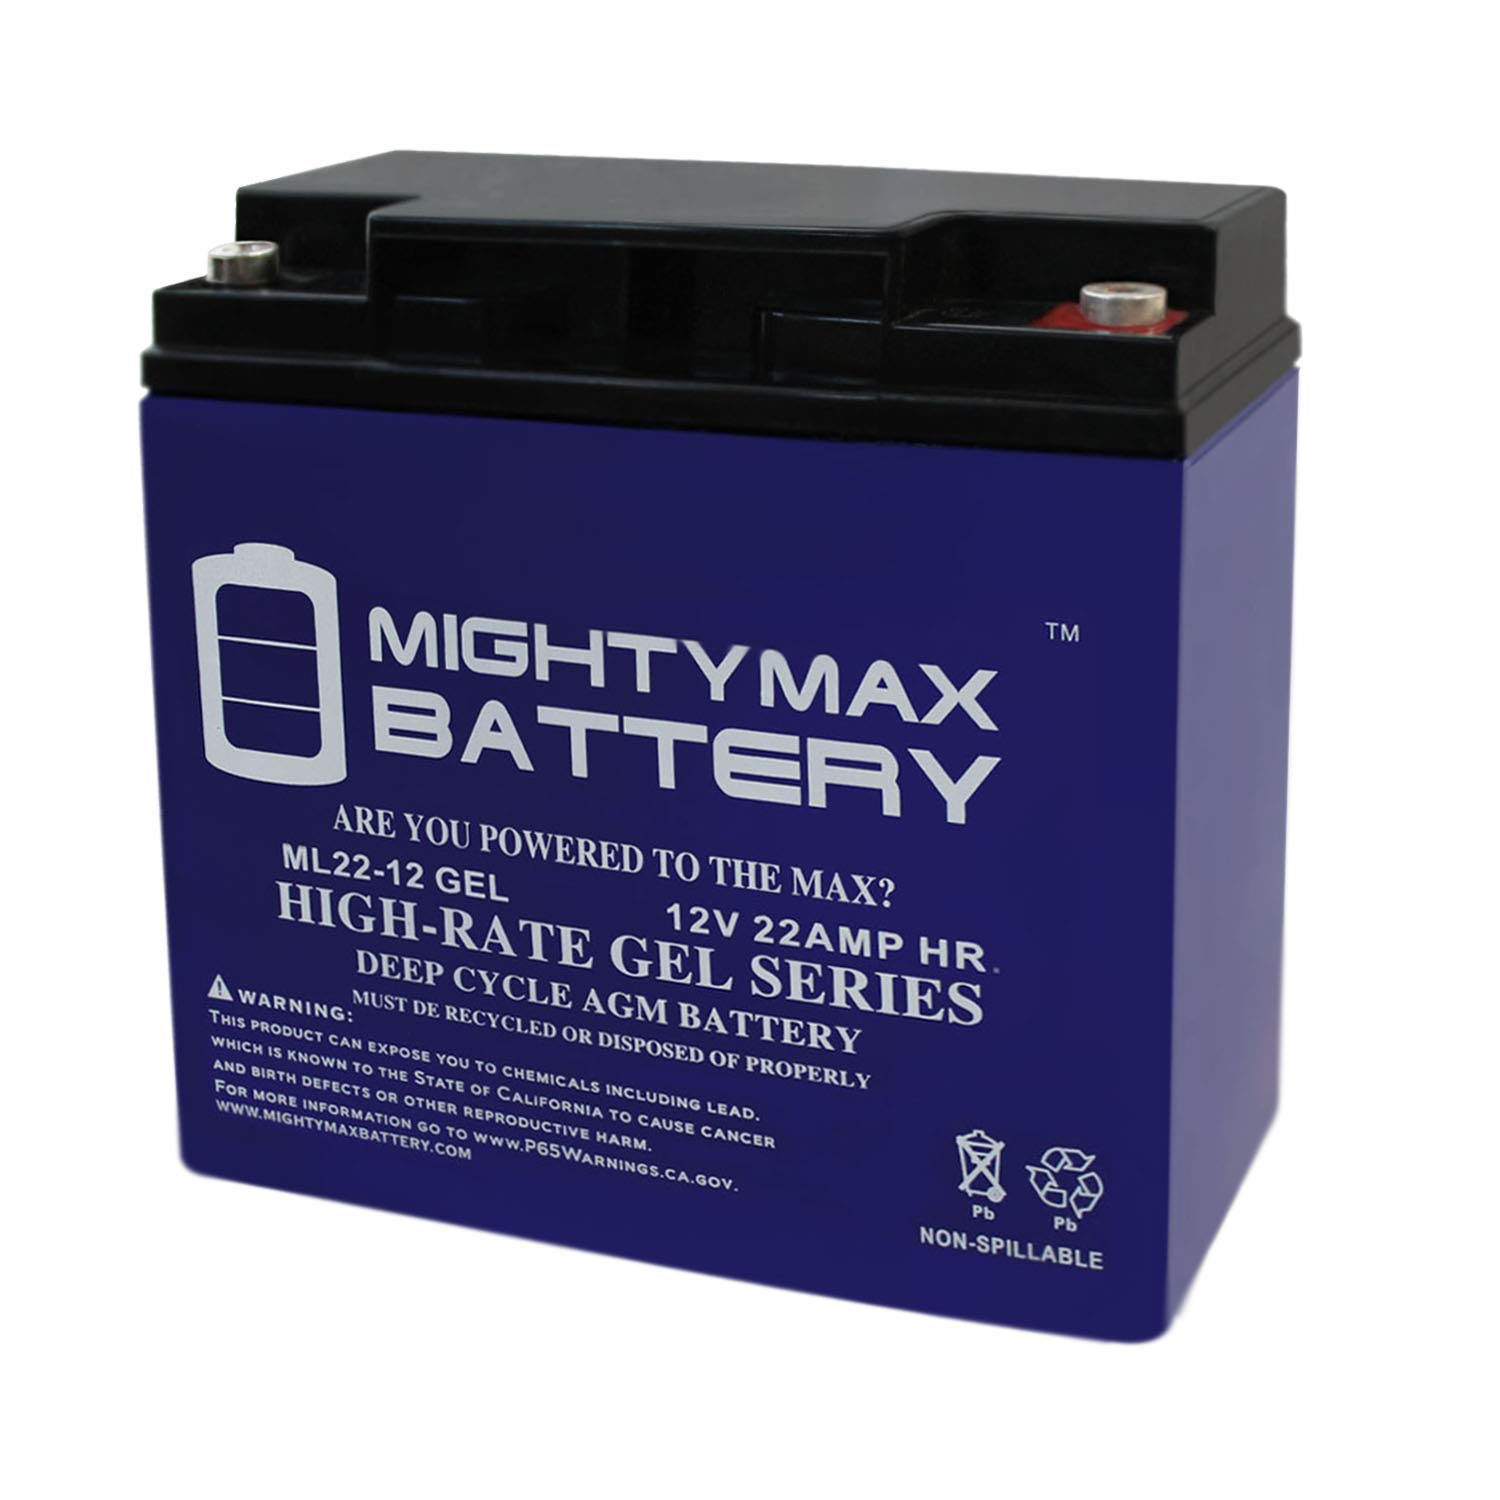 Mighty Max Battery 12V 22AH Gel Battery for Schumacher DSR ProSeries PSJ-2212 Booster Brand Product by Mighty Max Battery